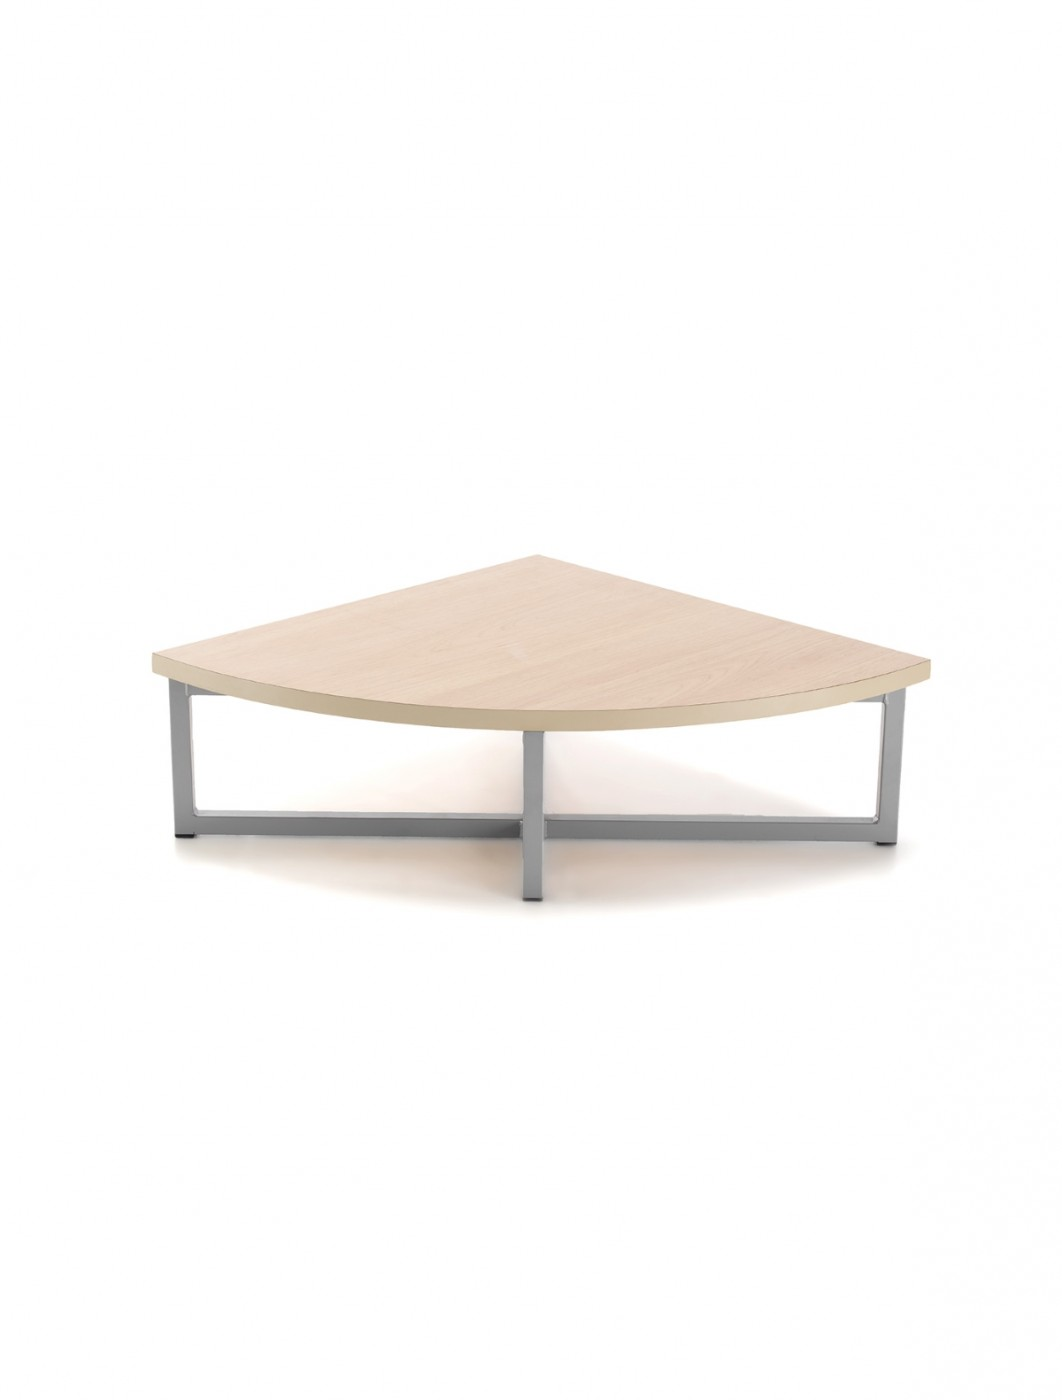 Modular Soft Seating - Dams Nera Corner Table NERA-Q-TABLE - enlarged view